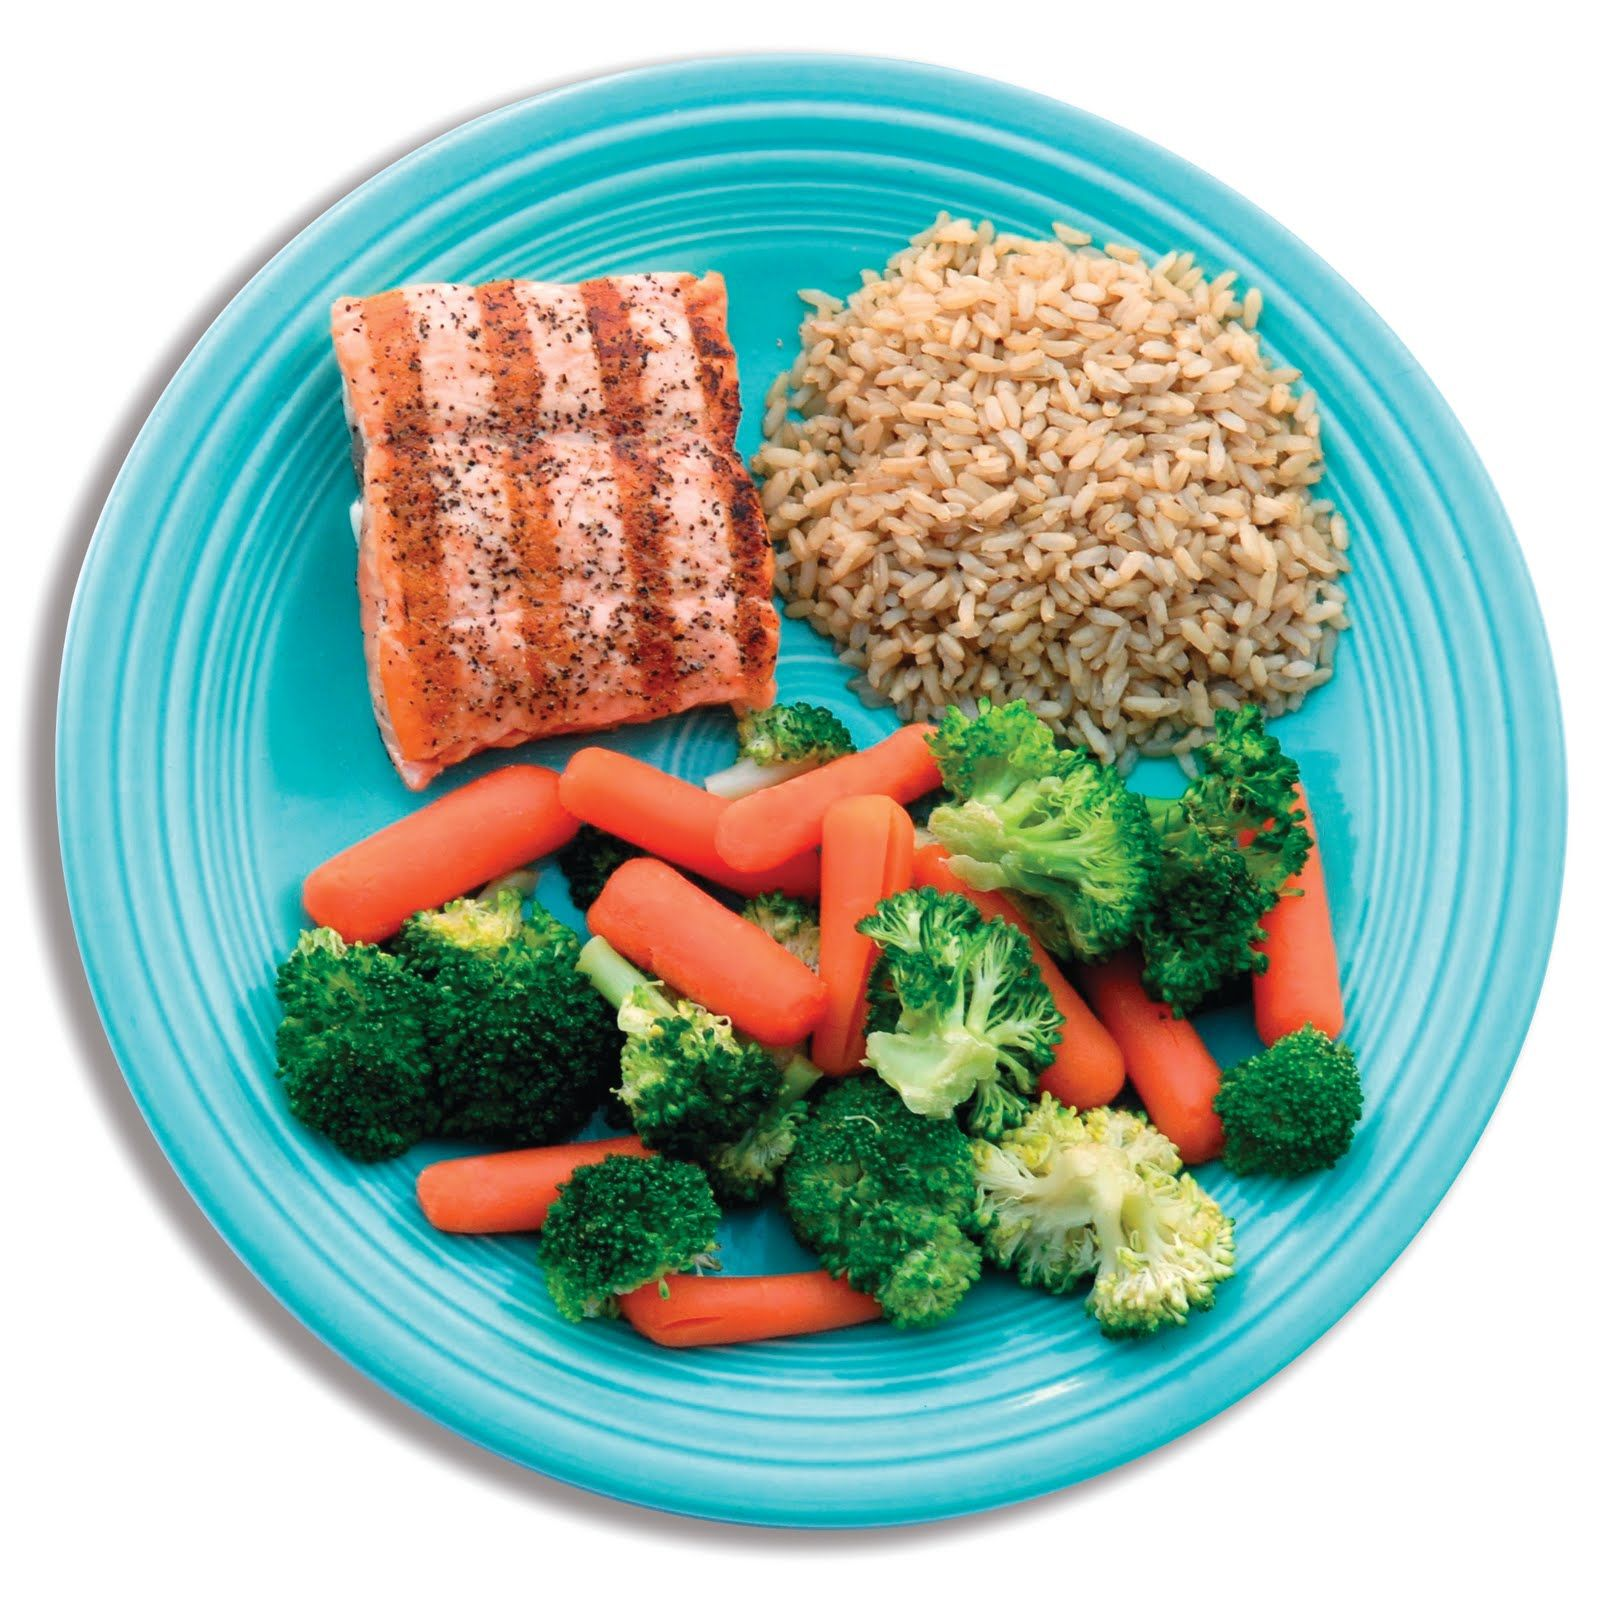 Healthy Plate Of Food